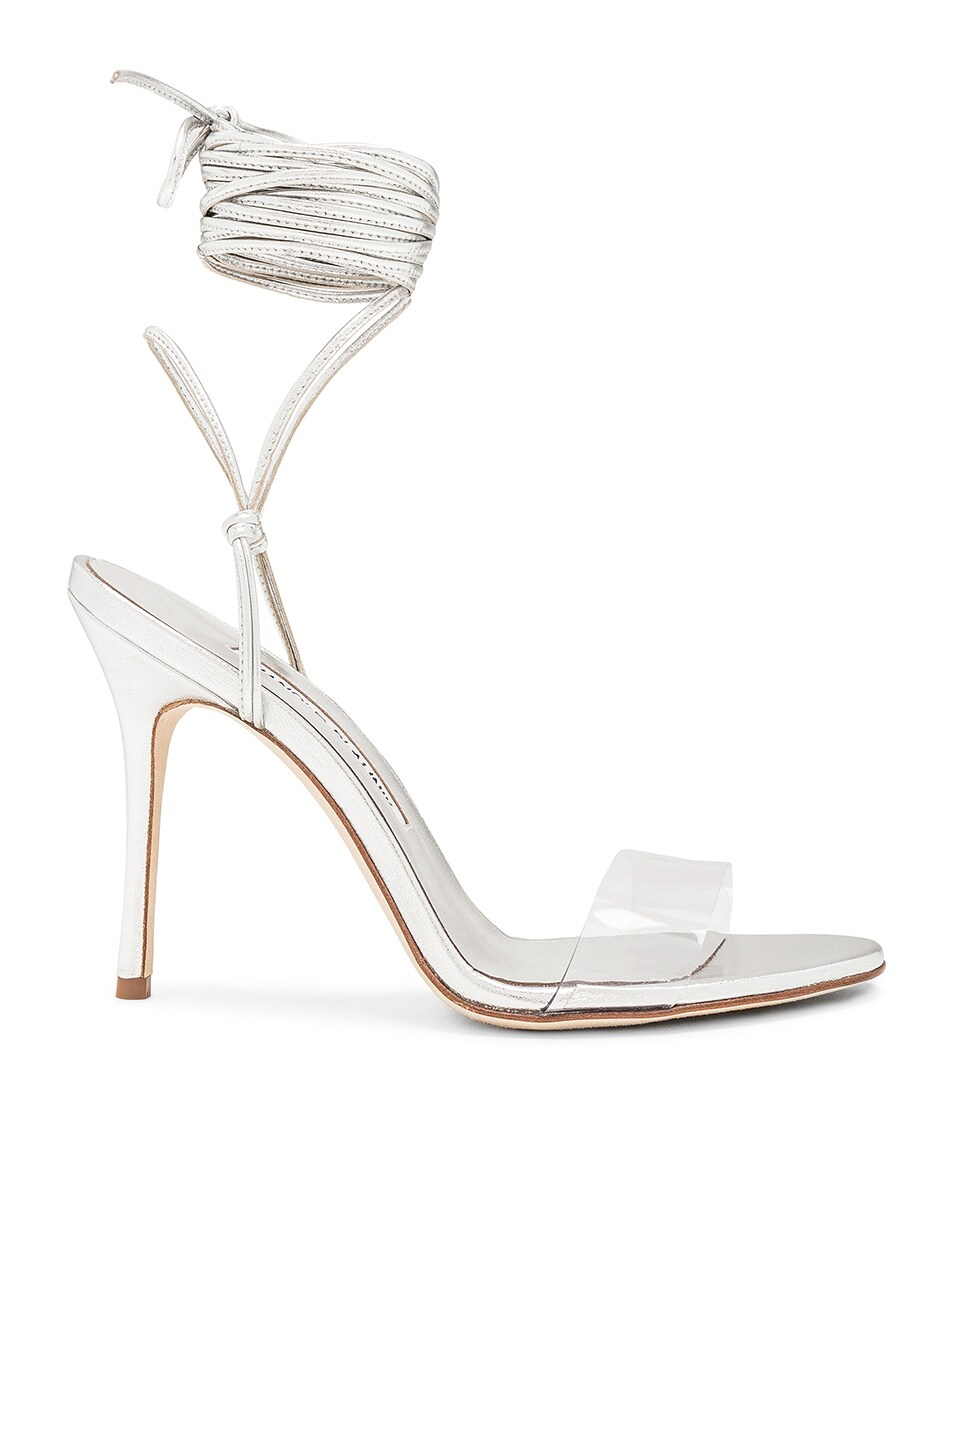 Image 1 of Manolo Blahnik Priscestro 105 Heel in Silver & Clear